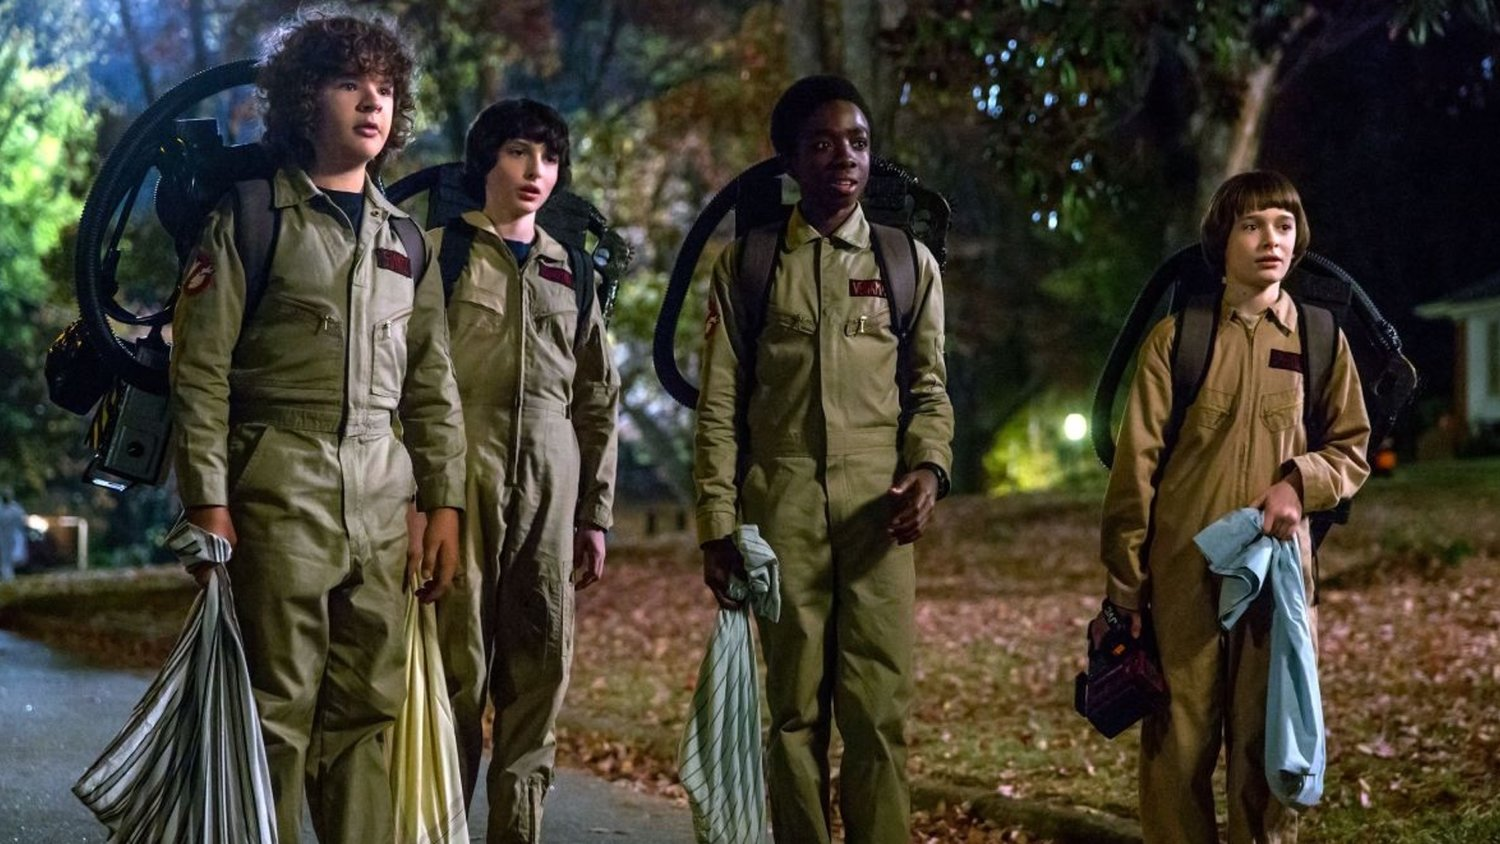 STRANGER THINGS Season 2 - New Photo and New Character and Plot Details